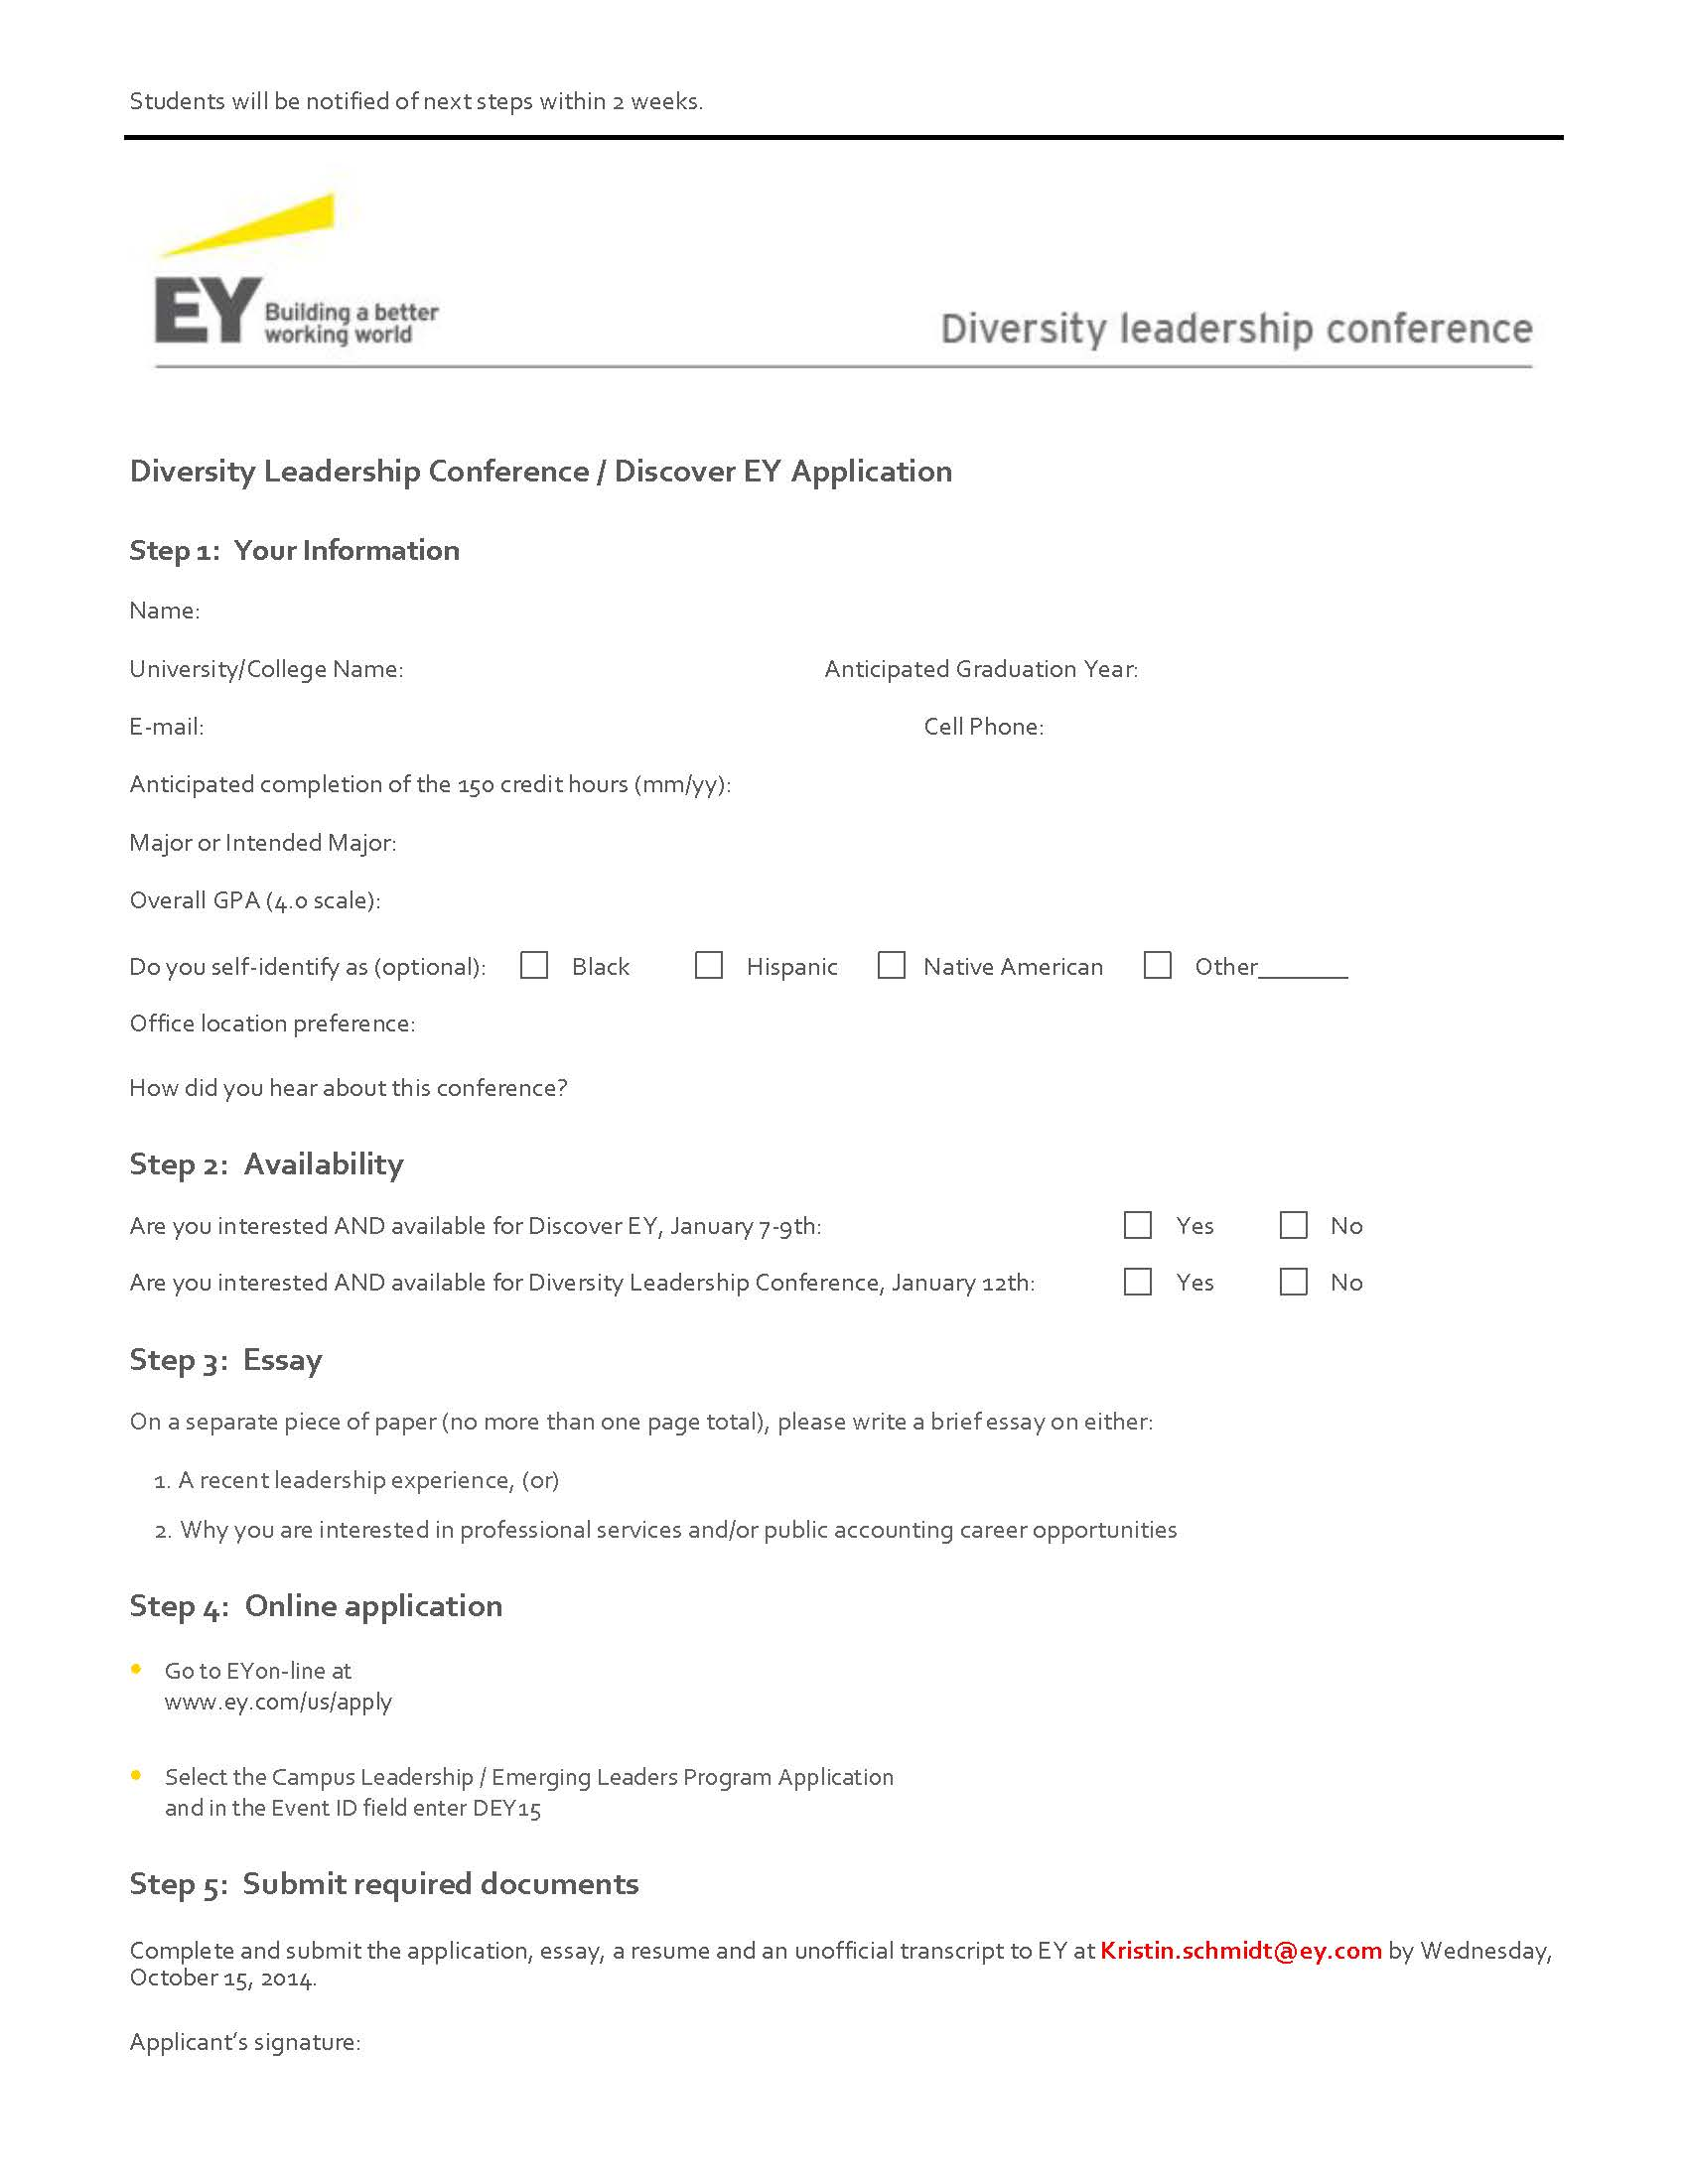 Ernst & Young's Diversity Leadership Conference